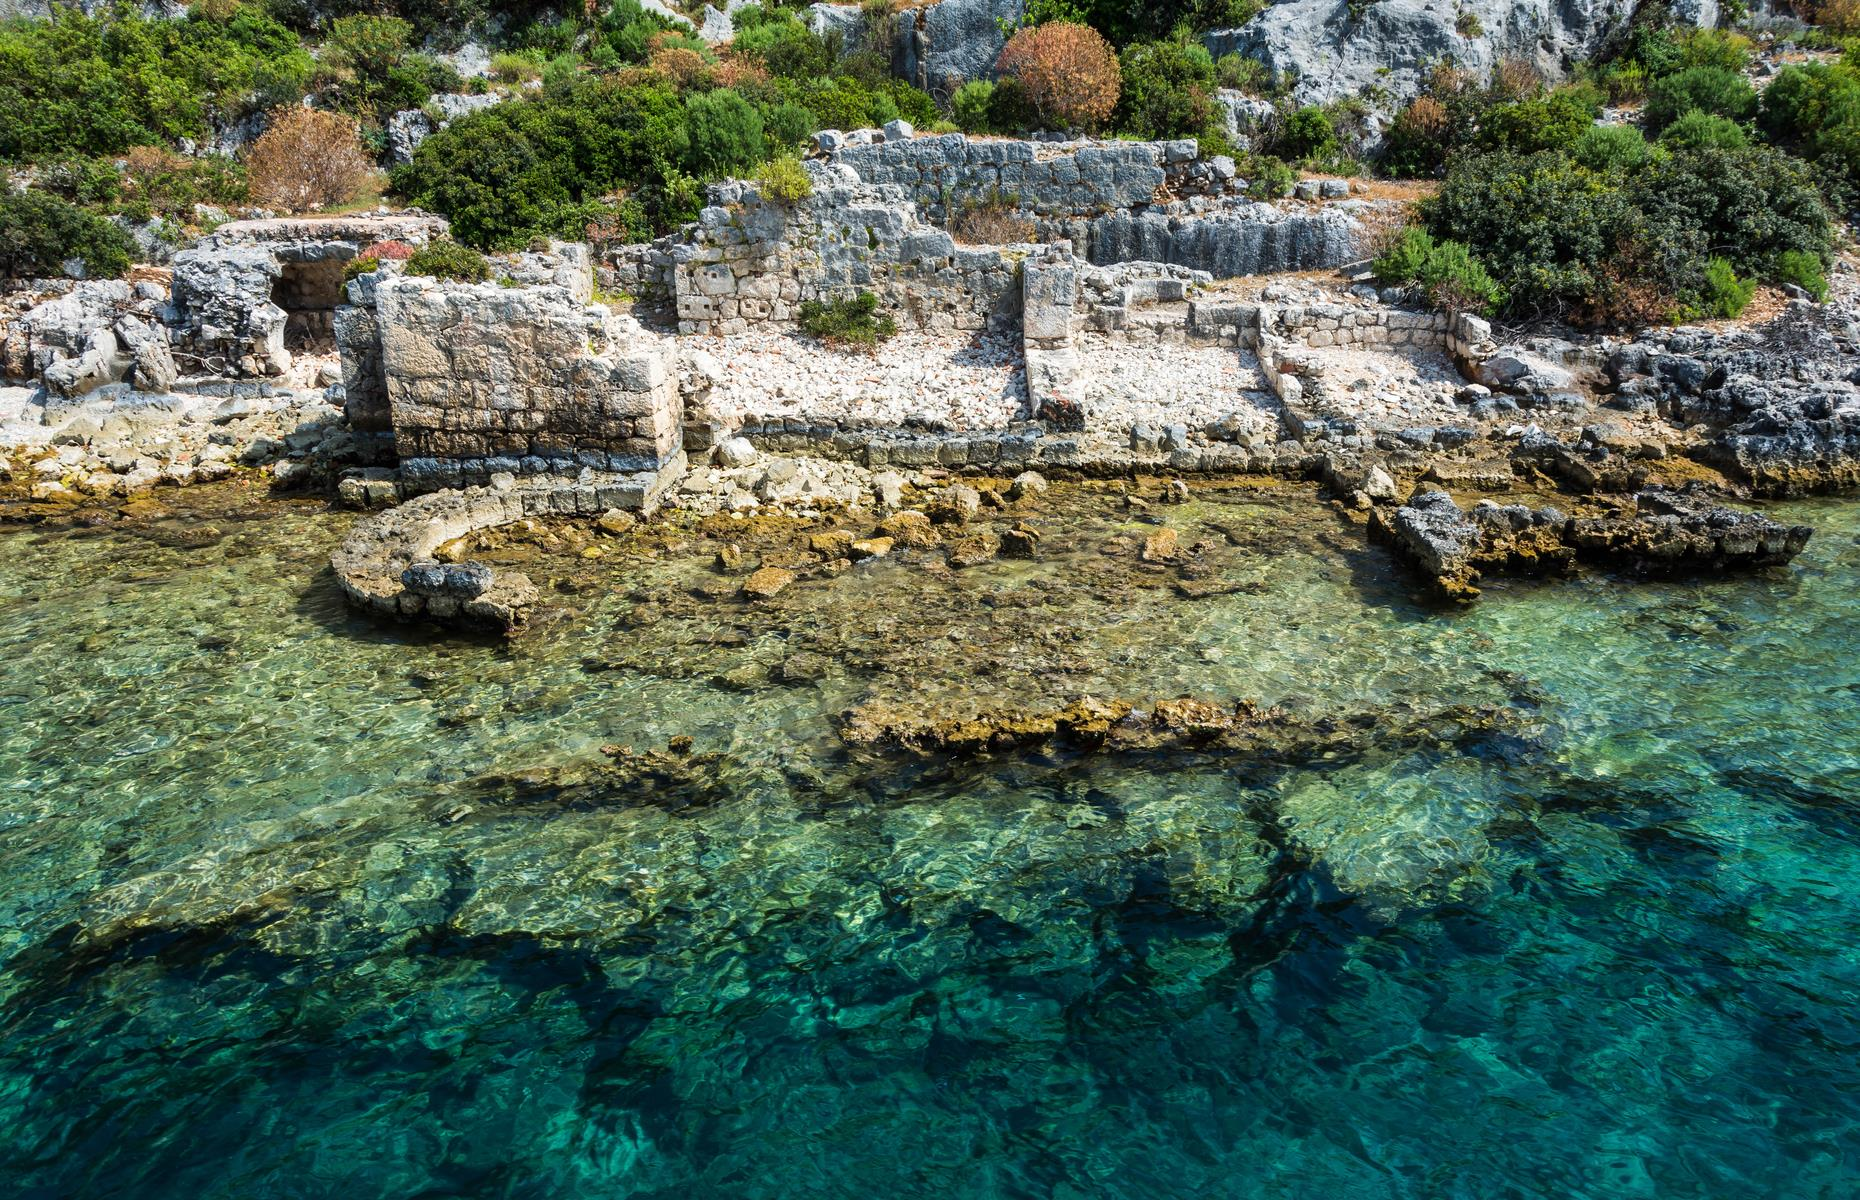 Slide 22 of 25: The crumbly ruins and stone structures of this sunken city peep tantalizingly above the waves and meander their way into the turquoise-tinged water from the rocky northern shoreline of Kekova, a tiny uninhabited island off the coast of Antalya in Turkey. Simena was a sea-trading post and ancient Lycian settlement believed to date to around 2000 BC.